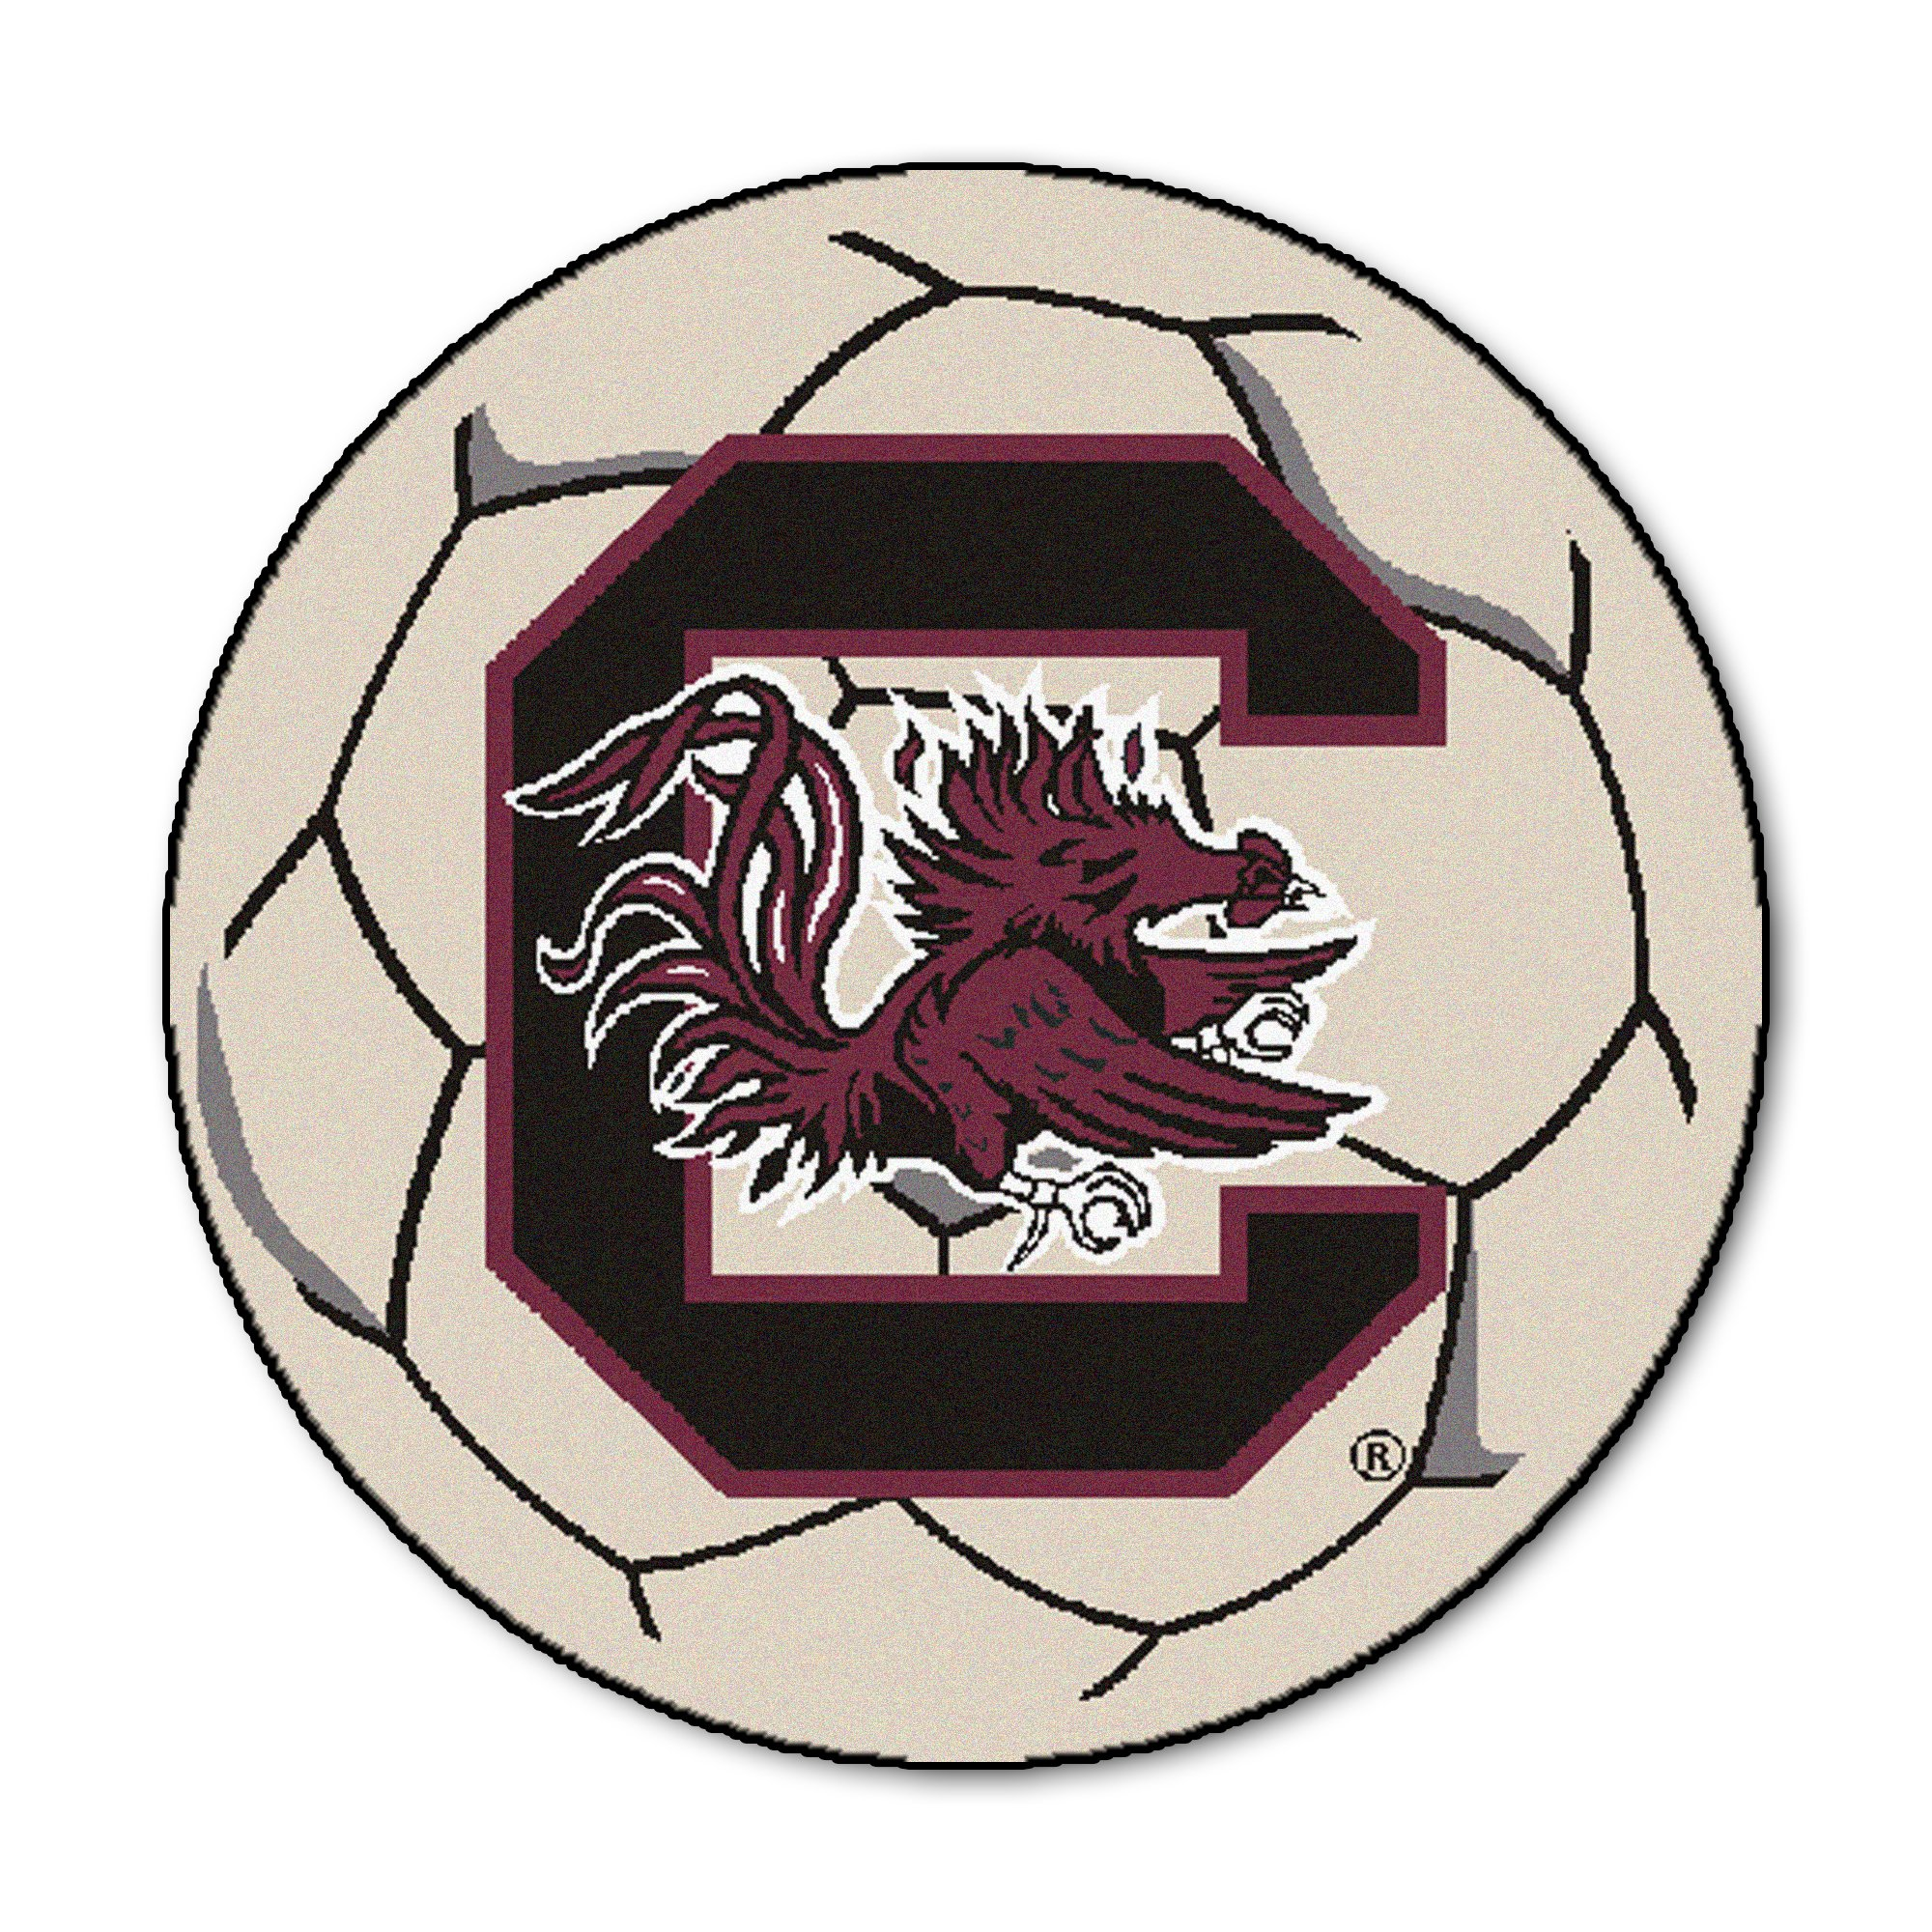 NCAA University of South Carolina Gamecocks Soccer Ball Mat Round Area Rug by Unknown (Image #1)